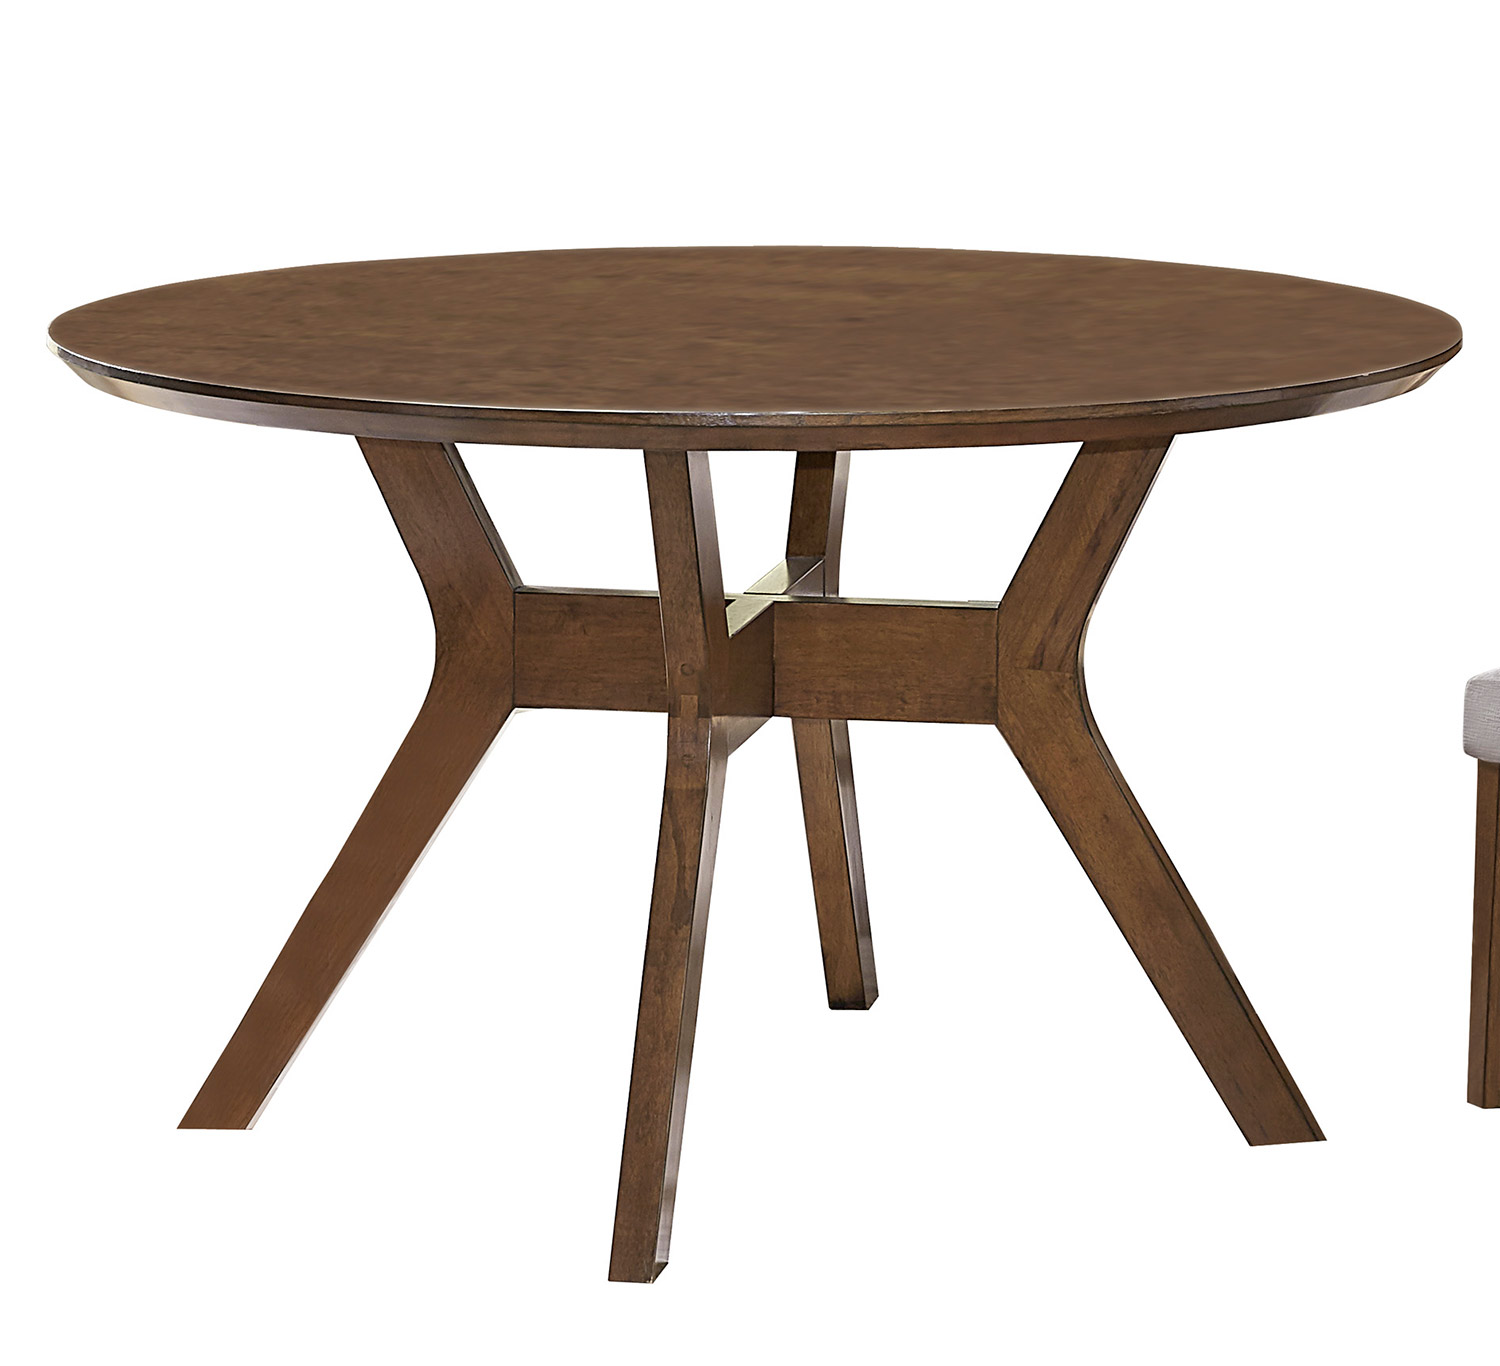 Homelegance Coel Round Dining Table - Natural